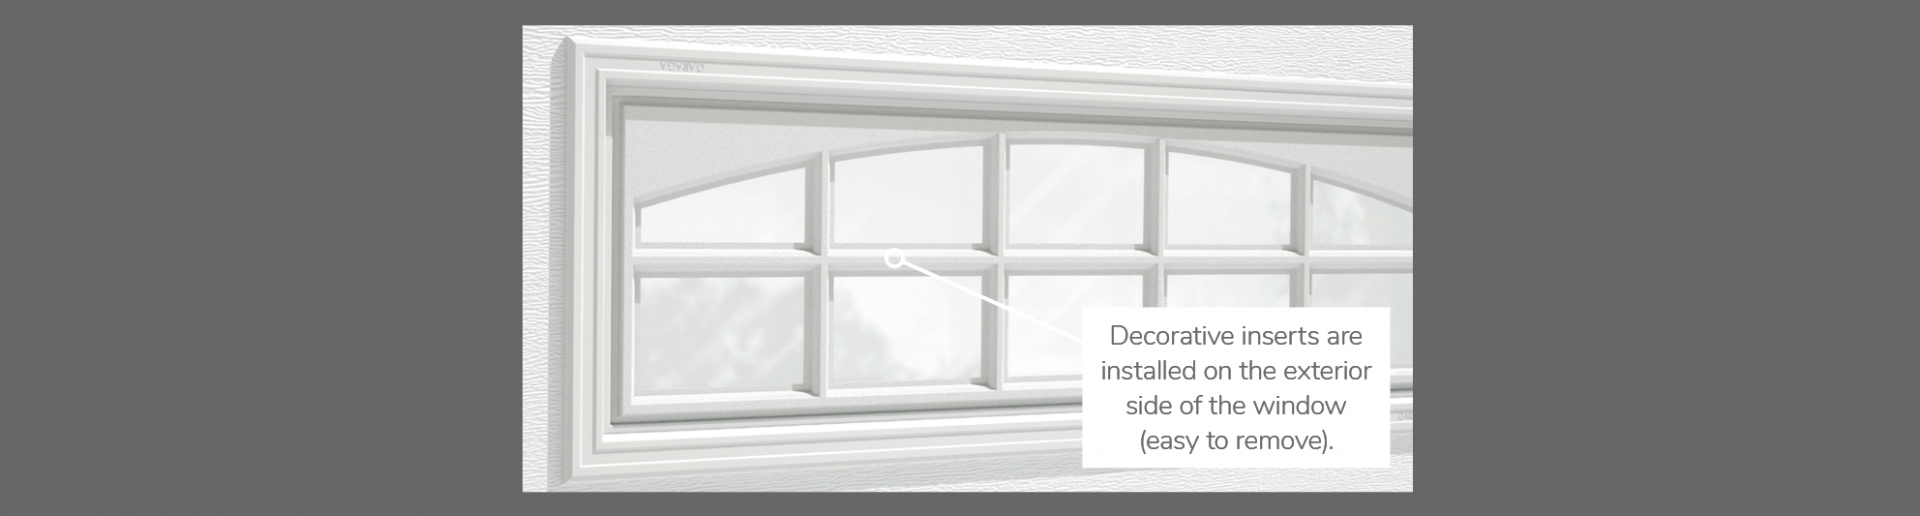 "Cascade Decorative Insert, 21"" x 13"" and 40"" x 13"", available for door R-16, R-12"